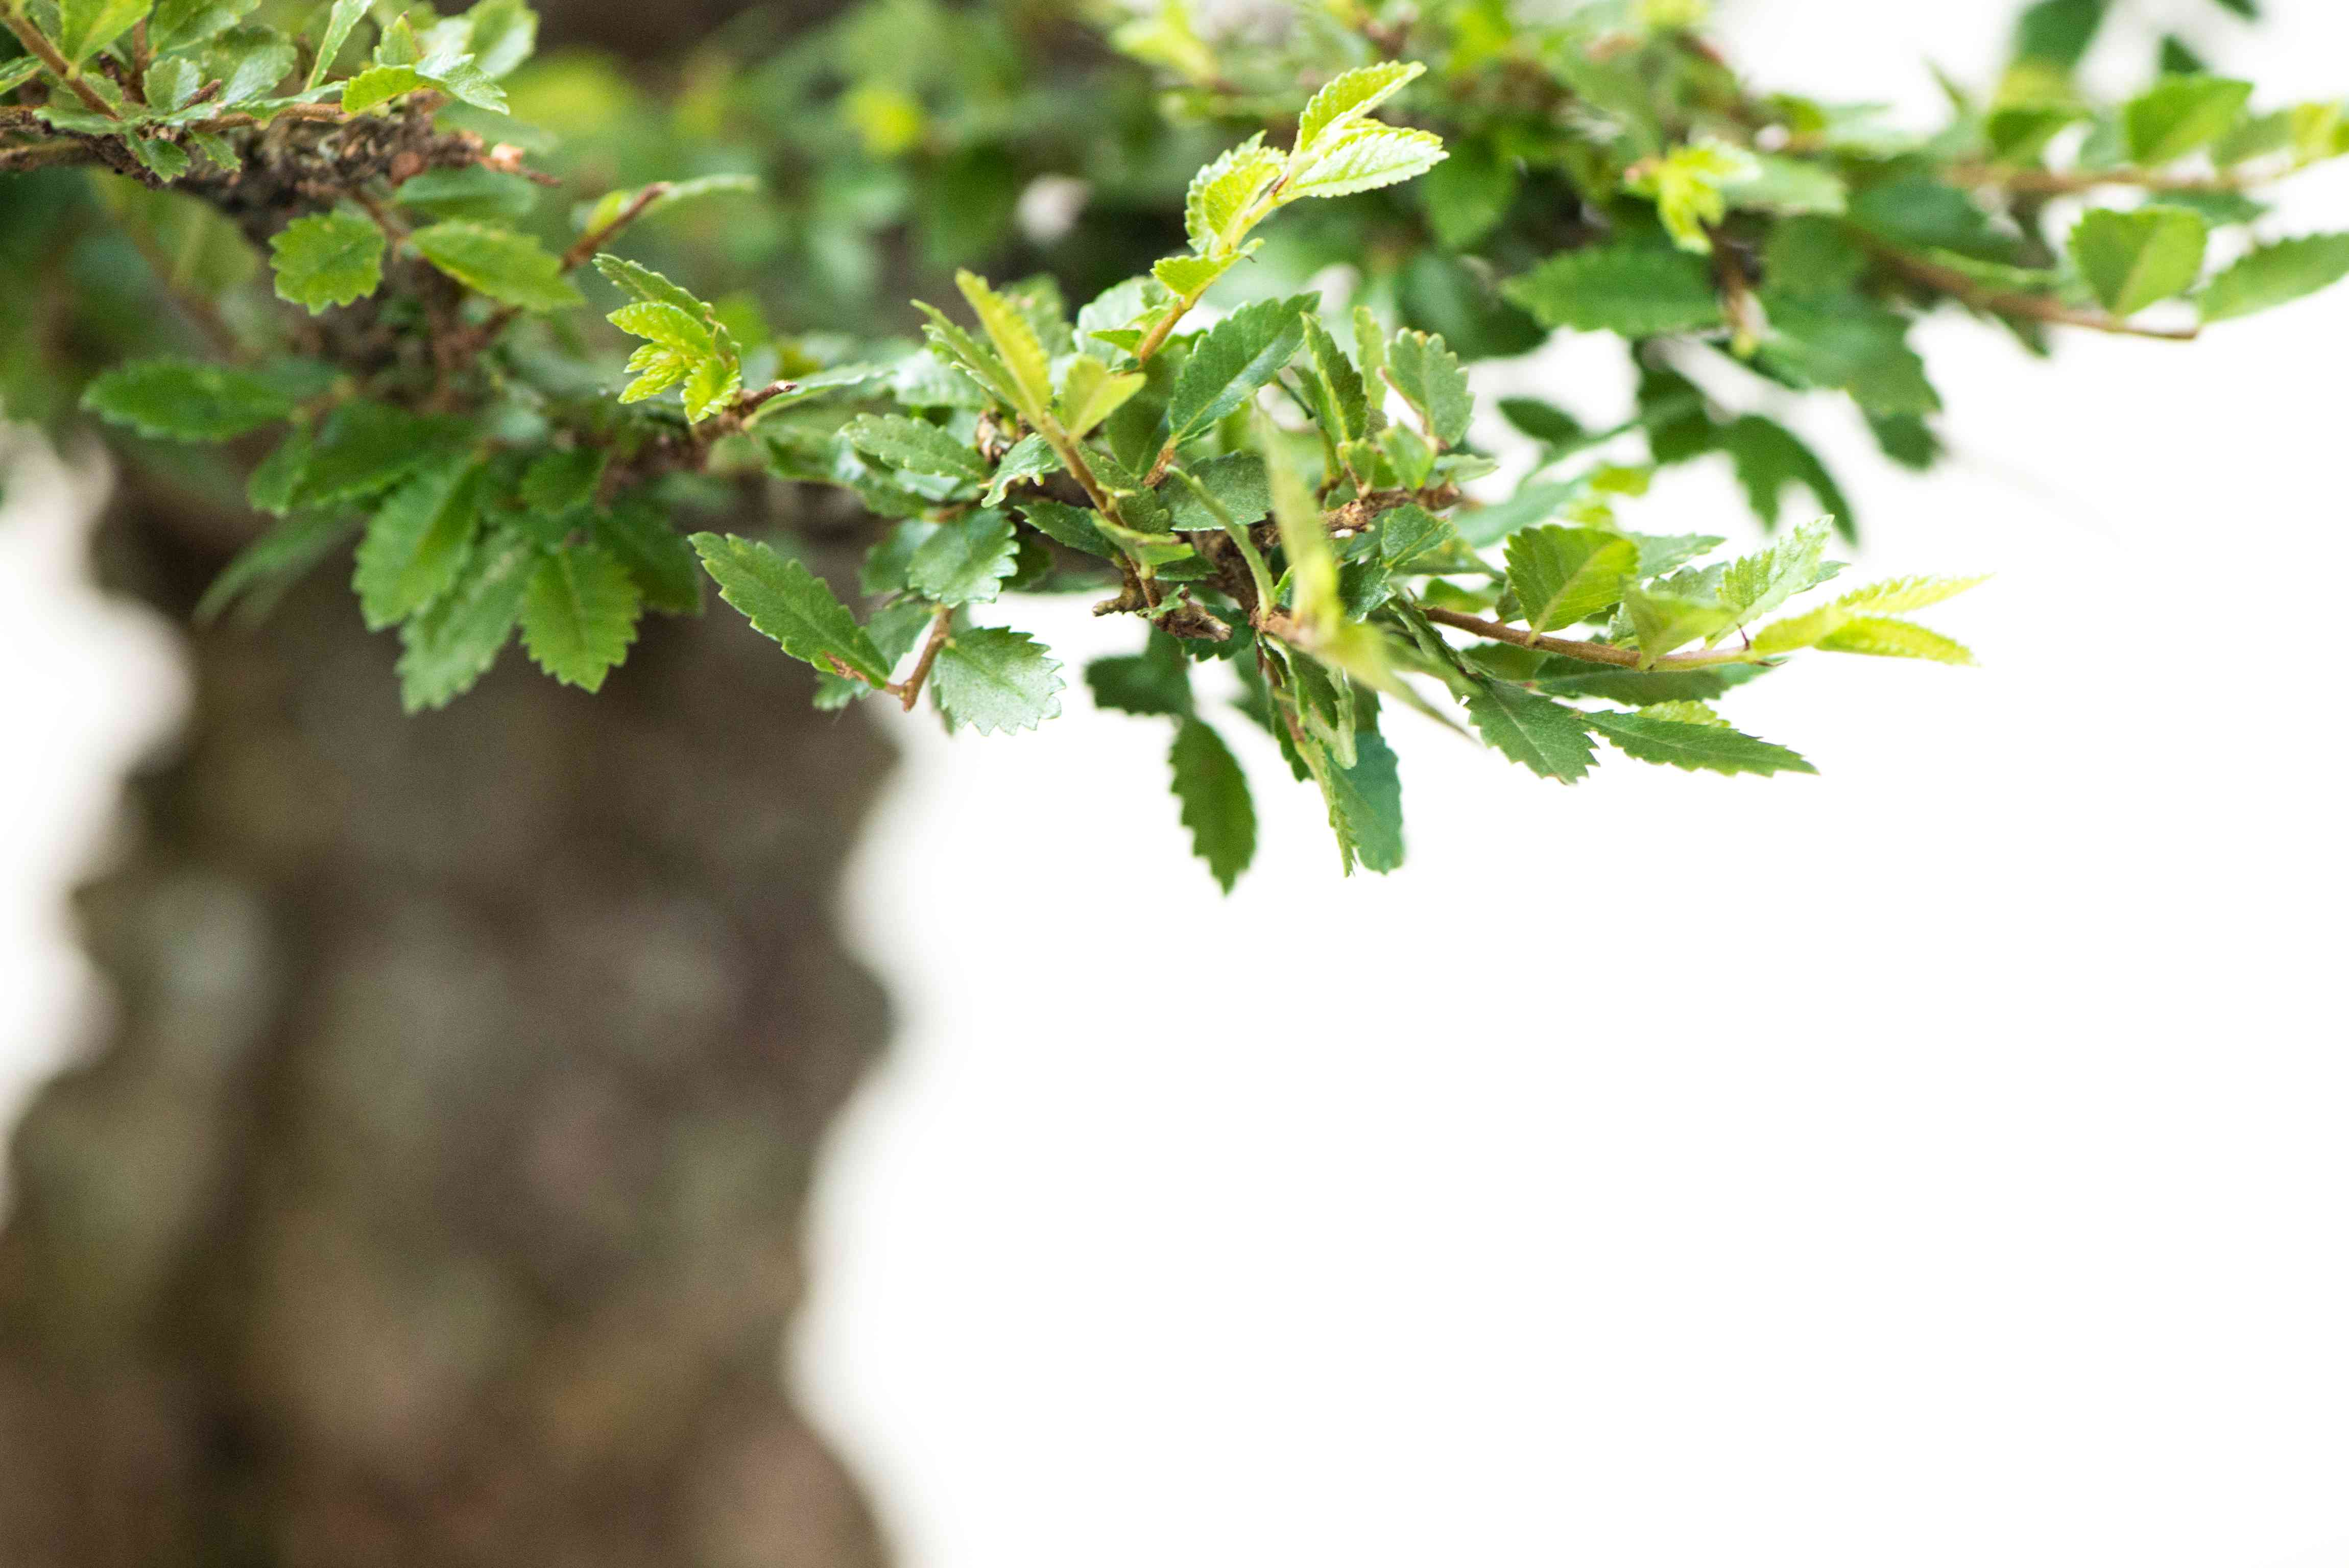 Green Chinese elm leaves